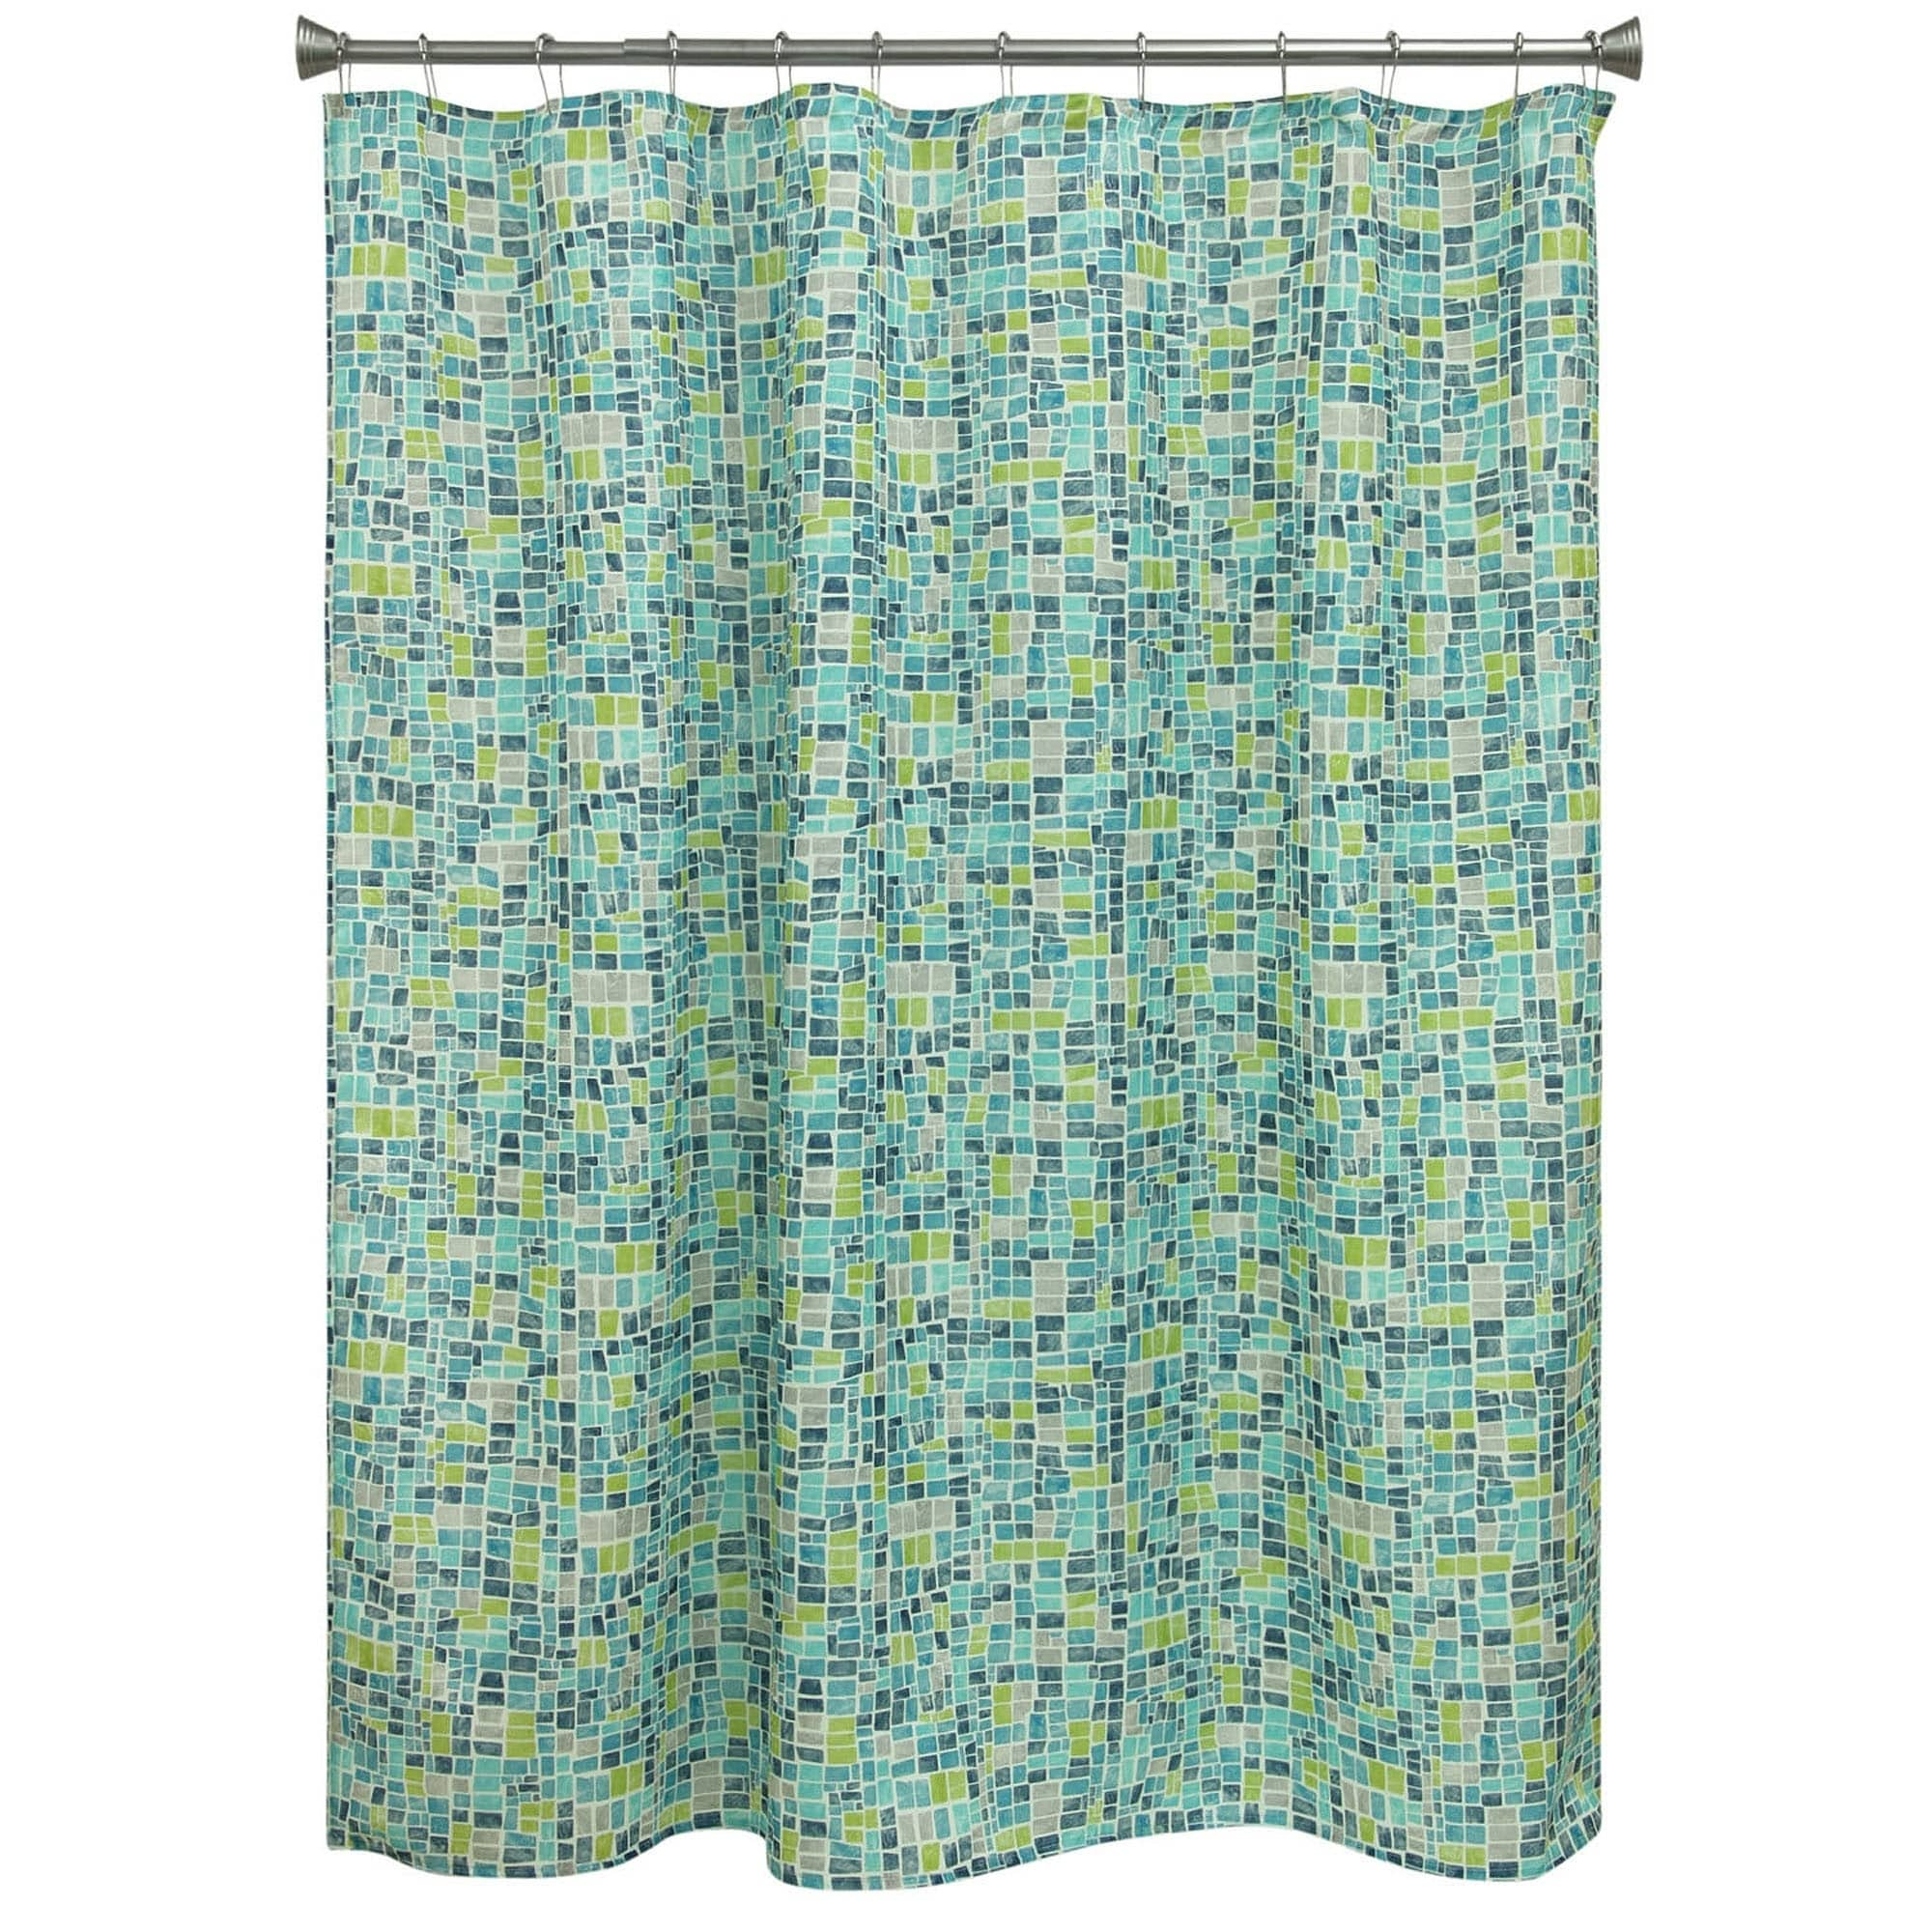 Shop Mosaic Tiles shower curtain by Bacova - On Sale - Free Shipping ...